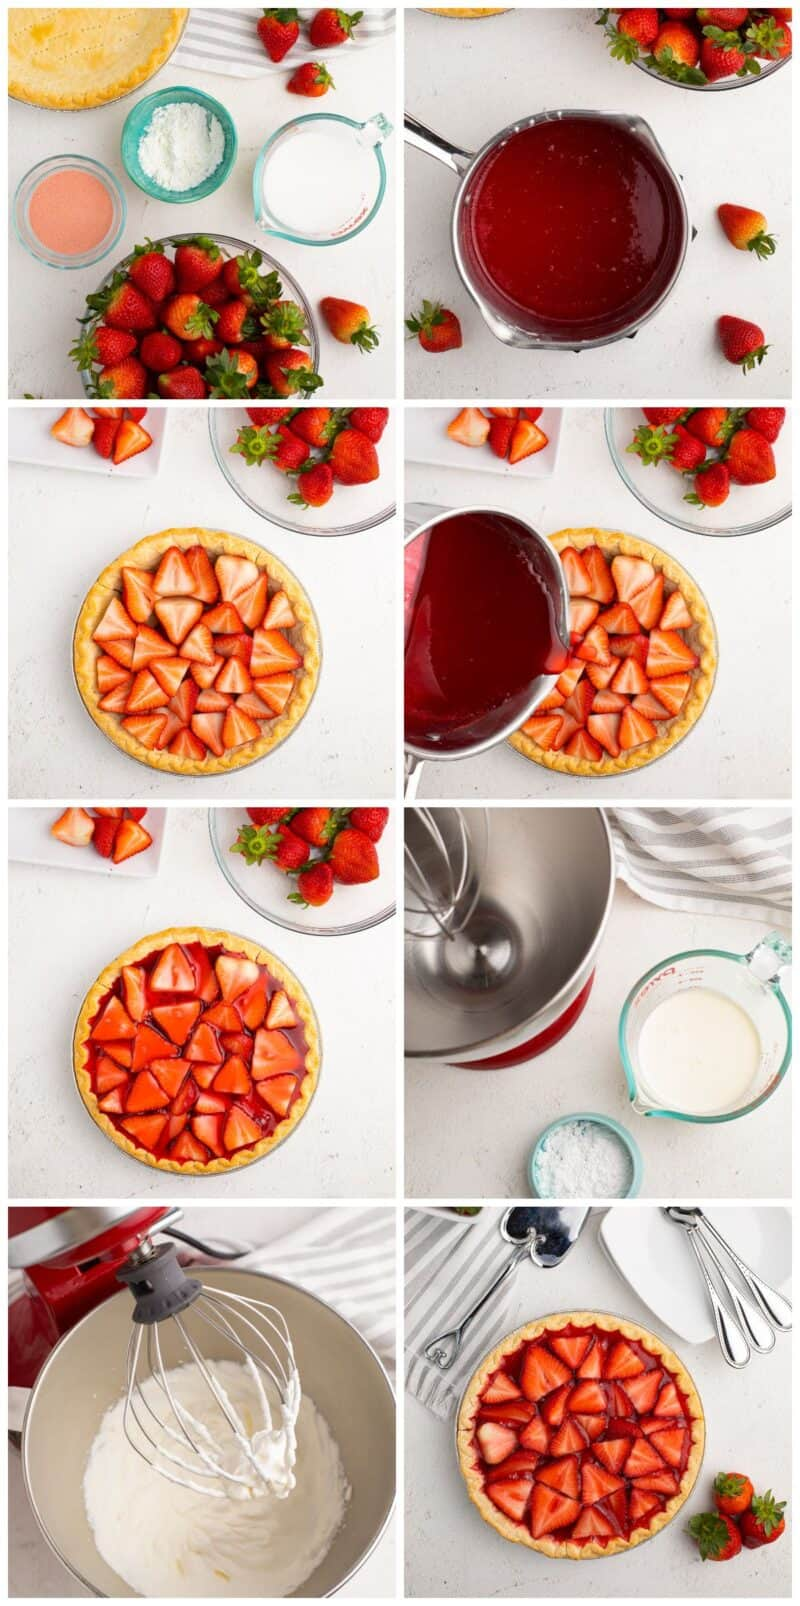 step by step photos for how to make strawberry jello pie